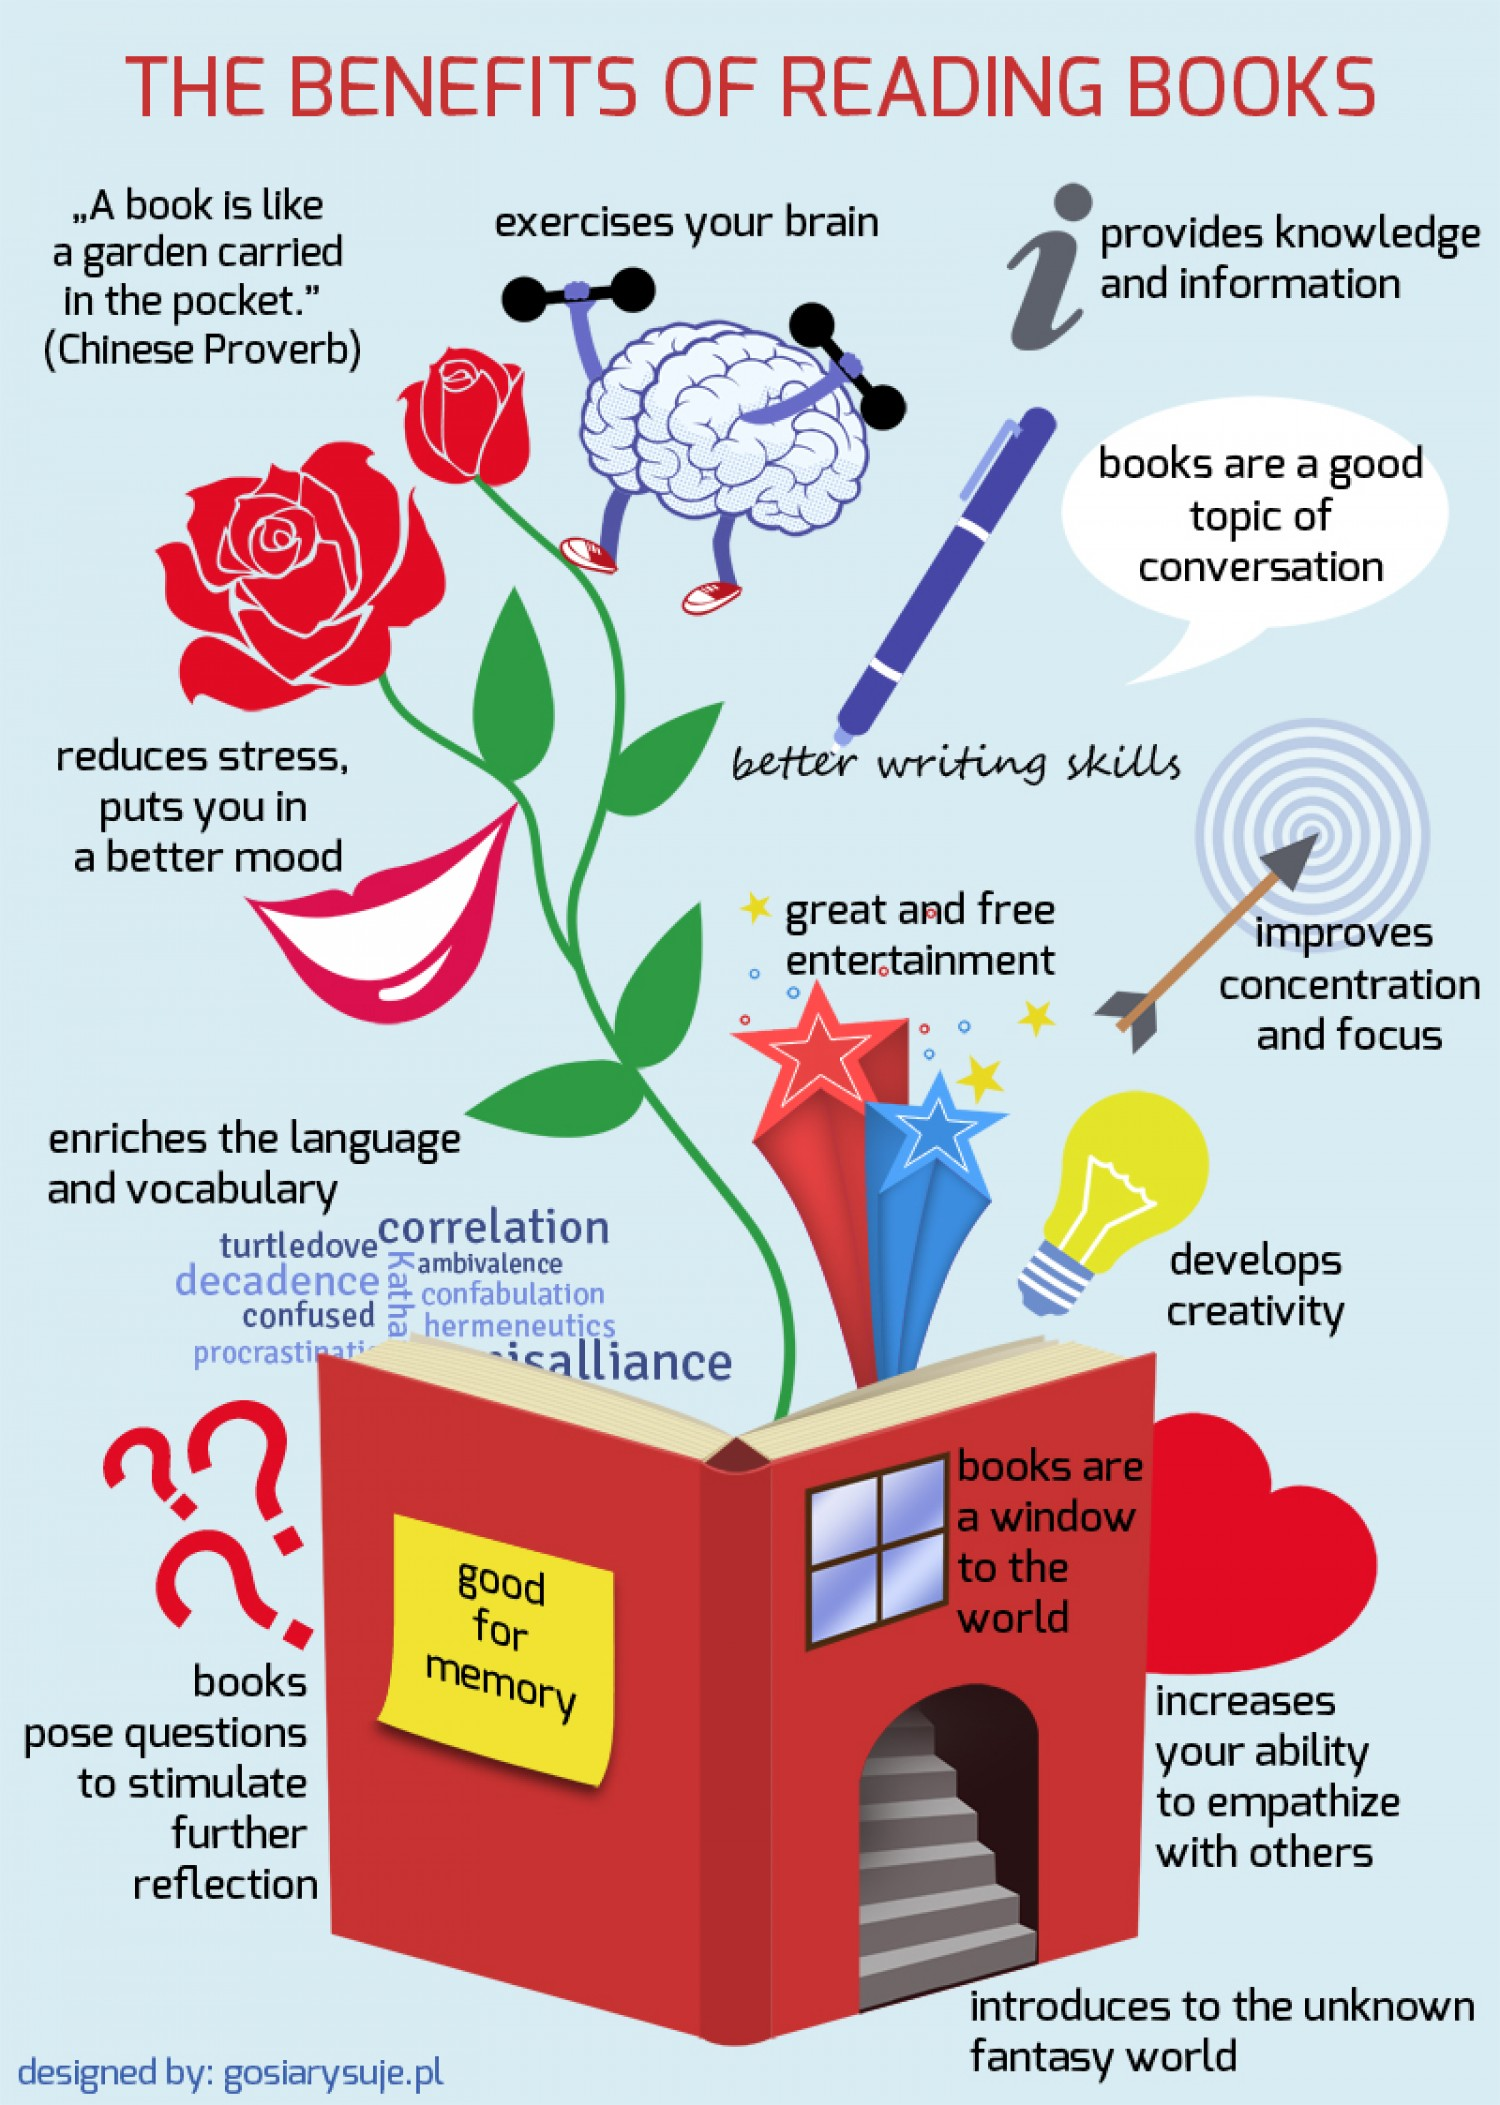 french essay on advantages of reading books Related posts: topic card: talk about online shopping ielts sample essay: should internet be regulated ielts essay: the number of older people is rising many people overlook the many health essay about advantages of reading books and therapeutic benefits of reading.